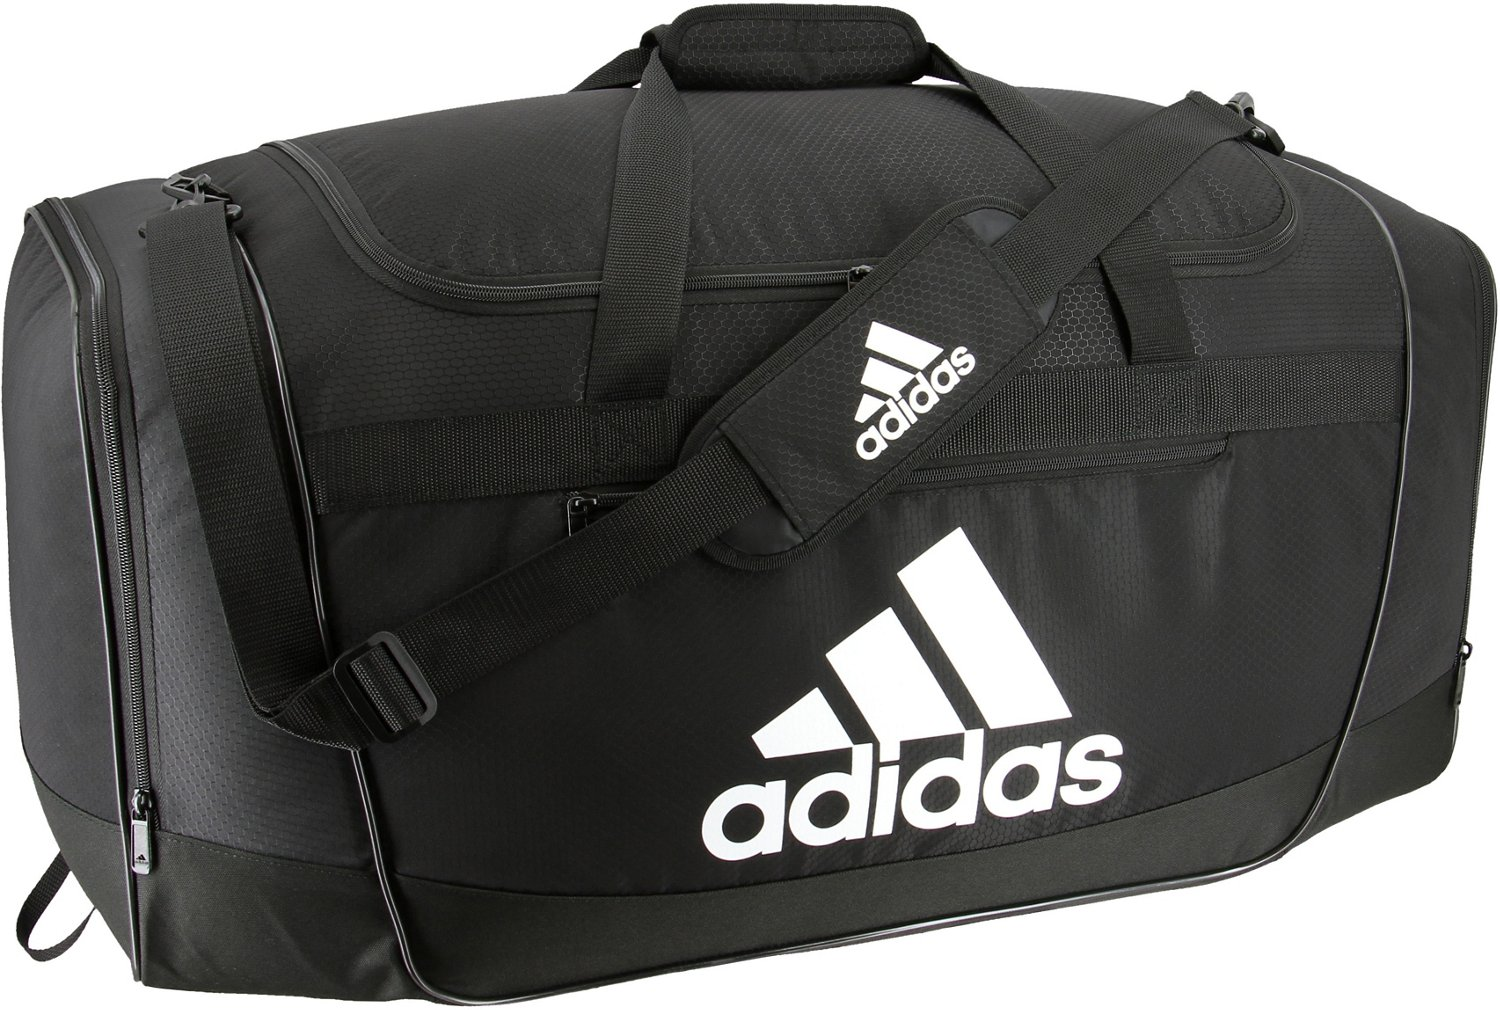 56fad3b1fc Display product reviews for adidas Defender II Large Duffel Bag